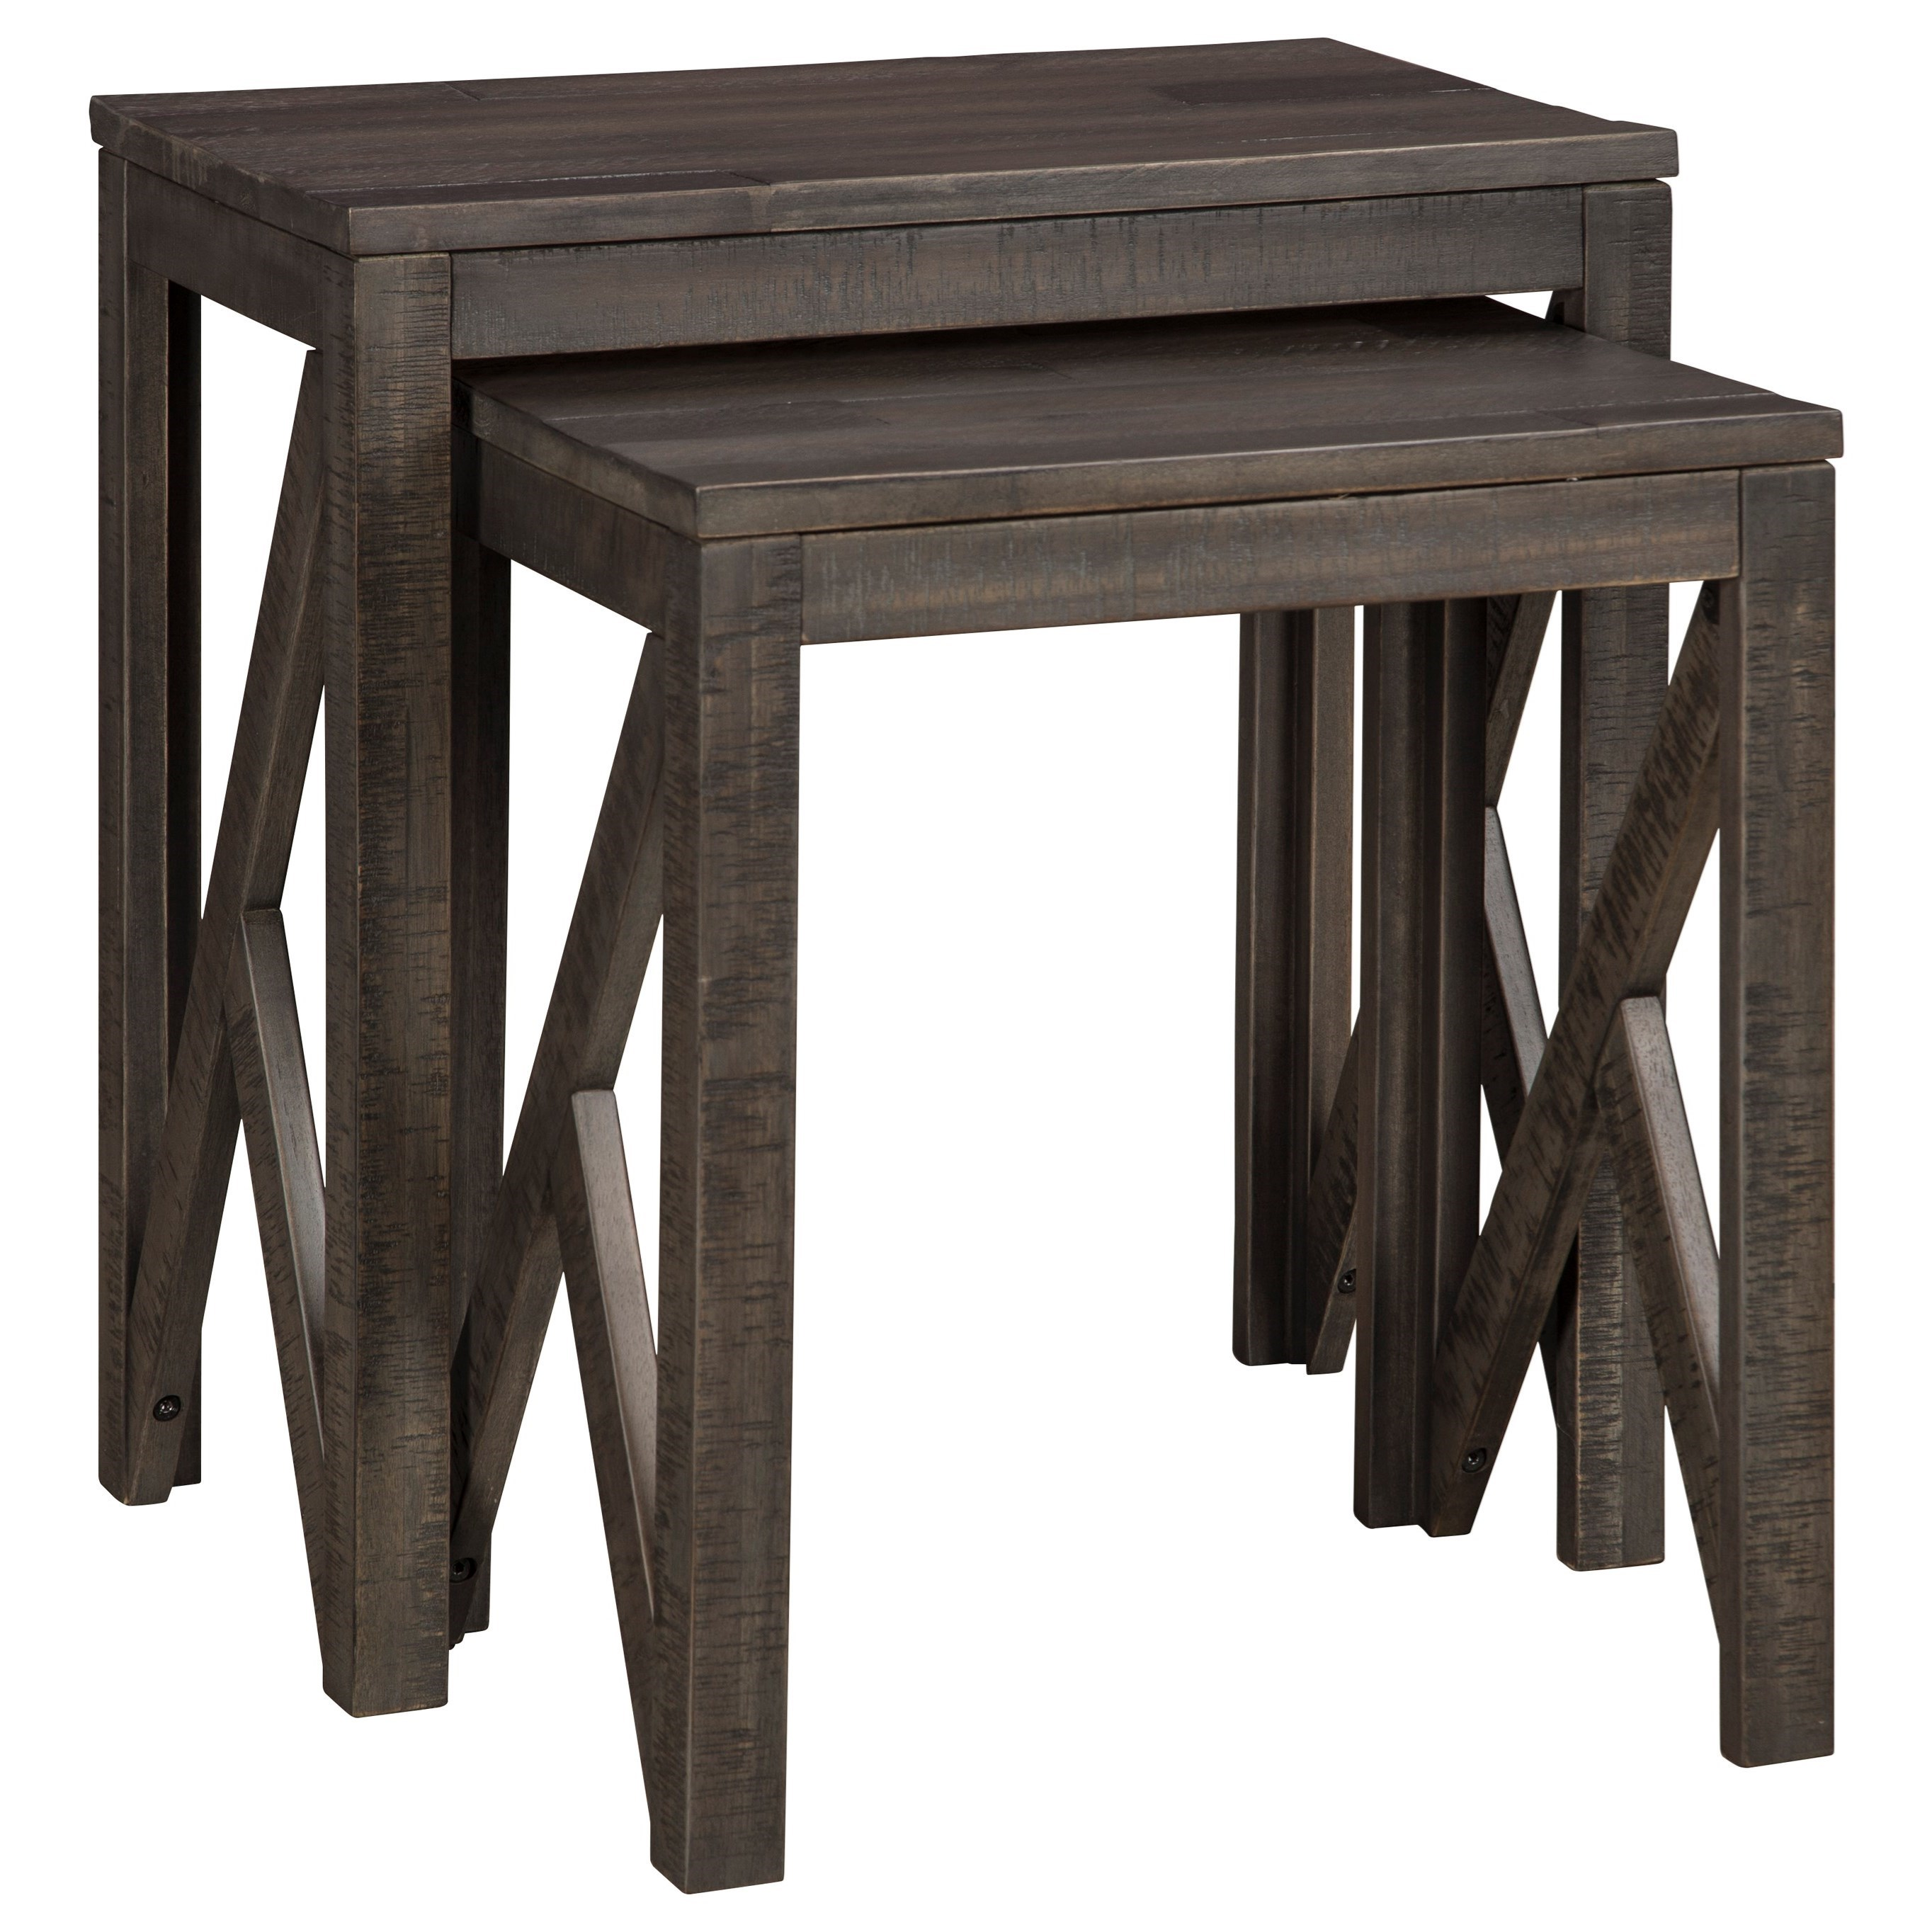 Emerdale Accent Table Set by Signature Design by Ashley at Northeast Factory Direct